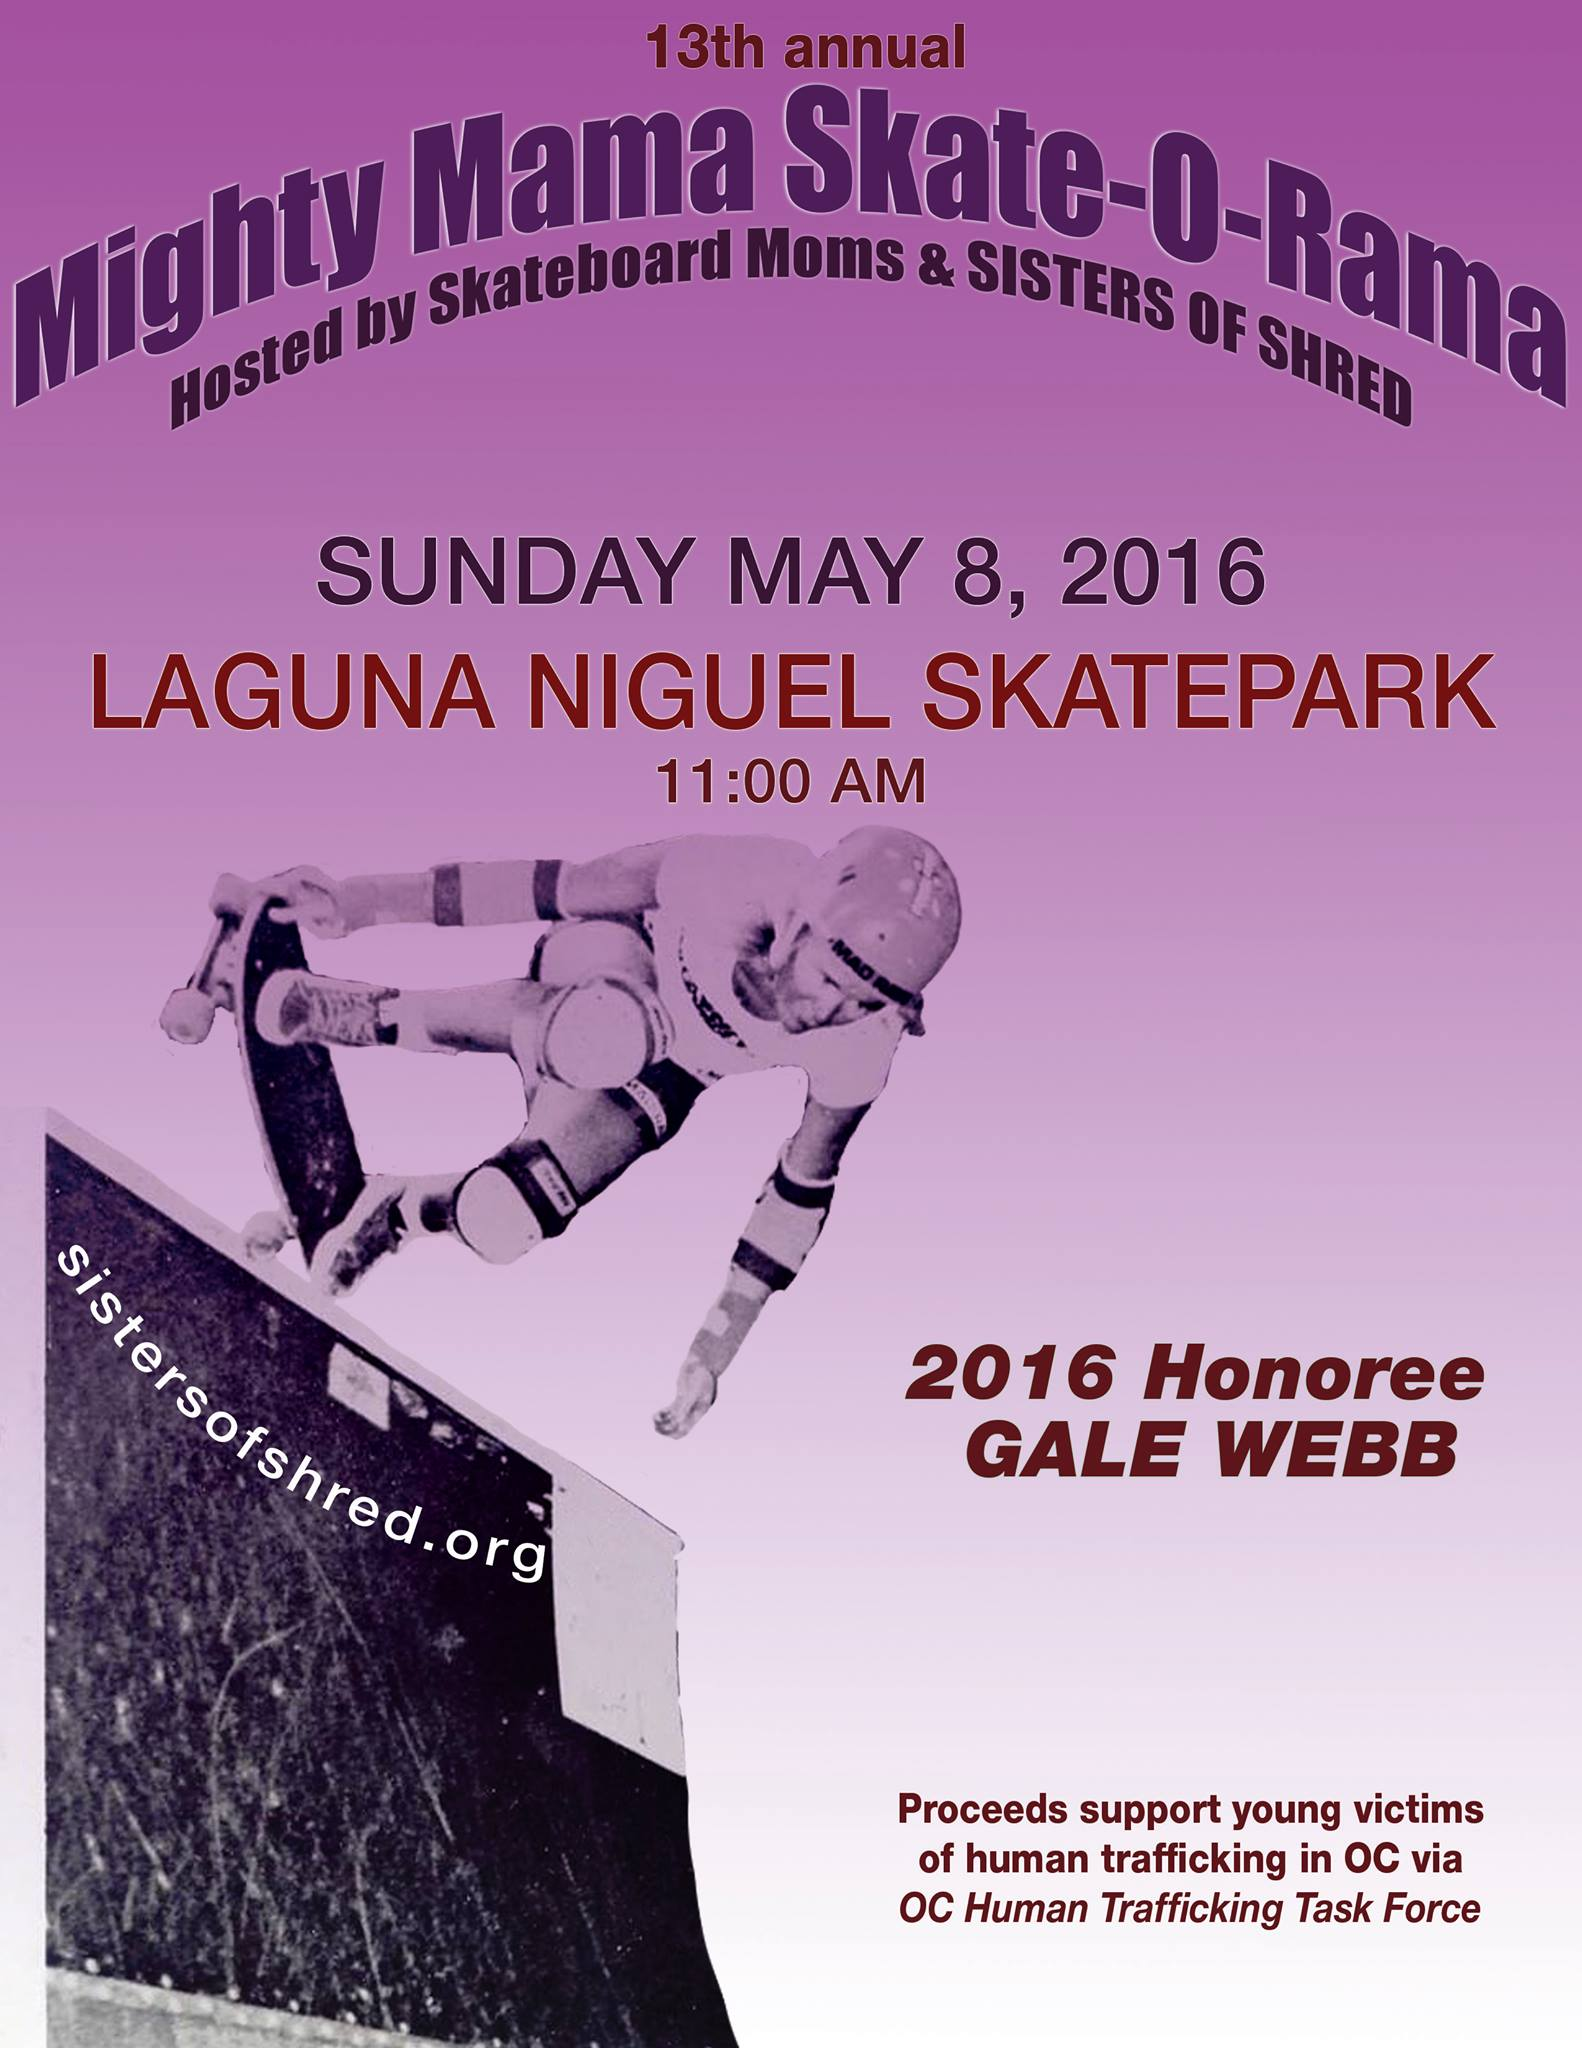 Mighty Mama Skate O Rama Event 2016